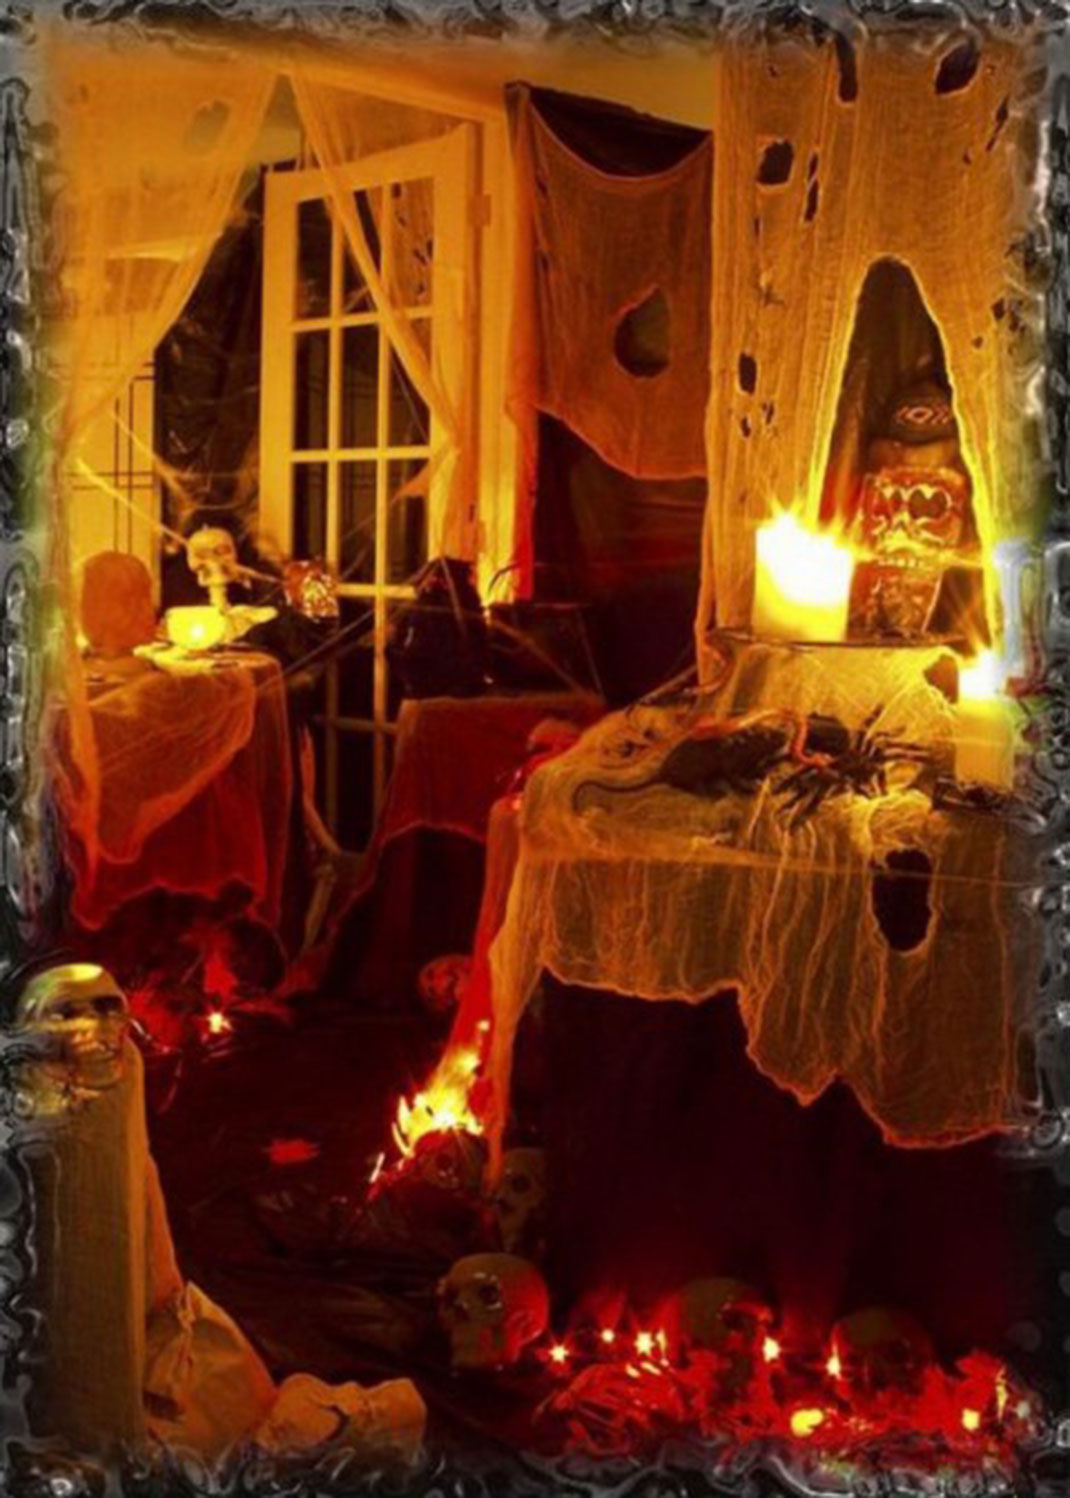 These Halloween Decorations Convert Homes Into Real Horror Meuseums-29